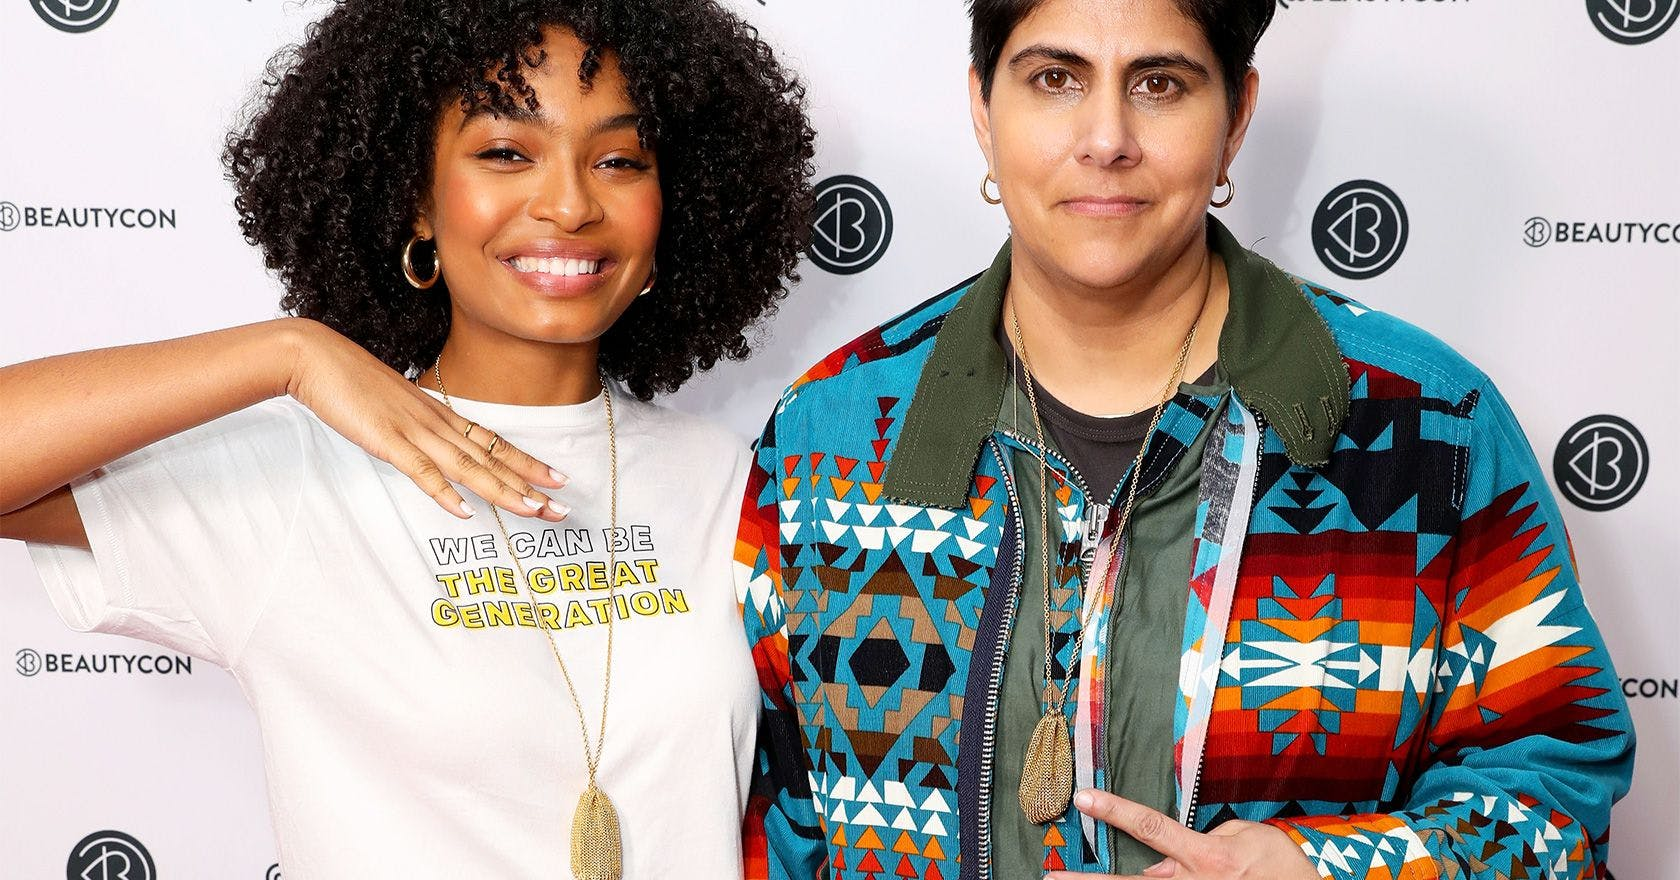 How do we make beauty all-inclusive? Yara Shahidi speaks to Beautycon CEO Moj Mahdara